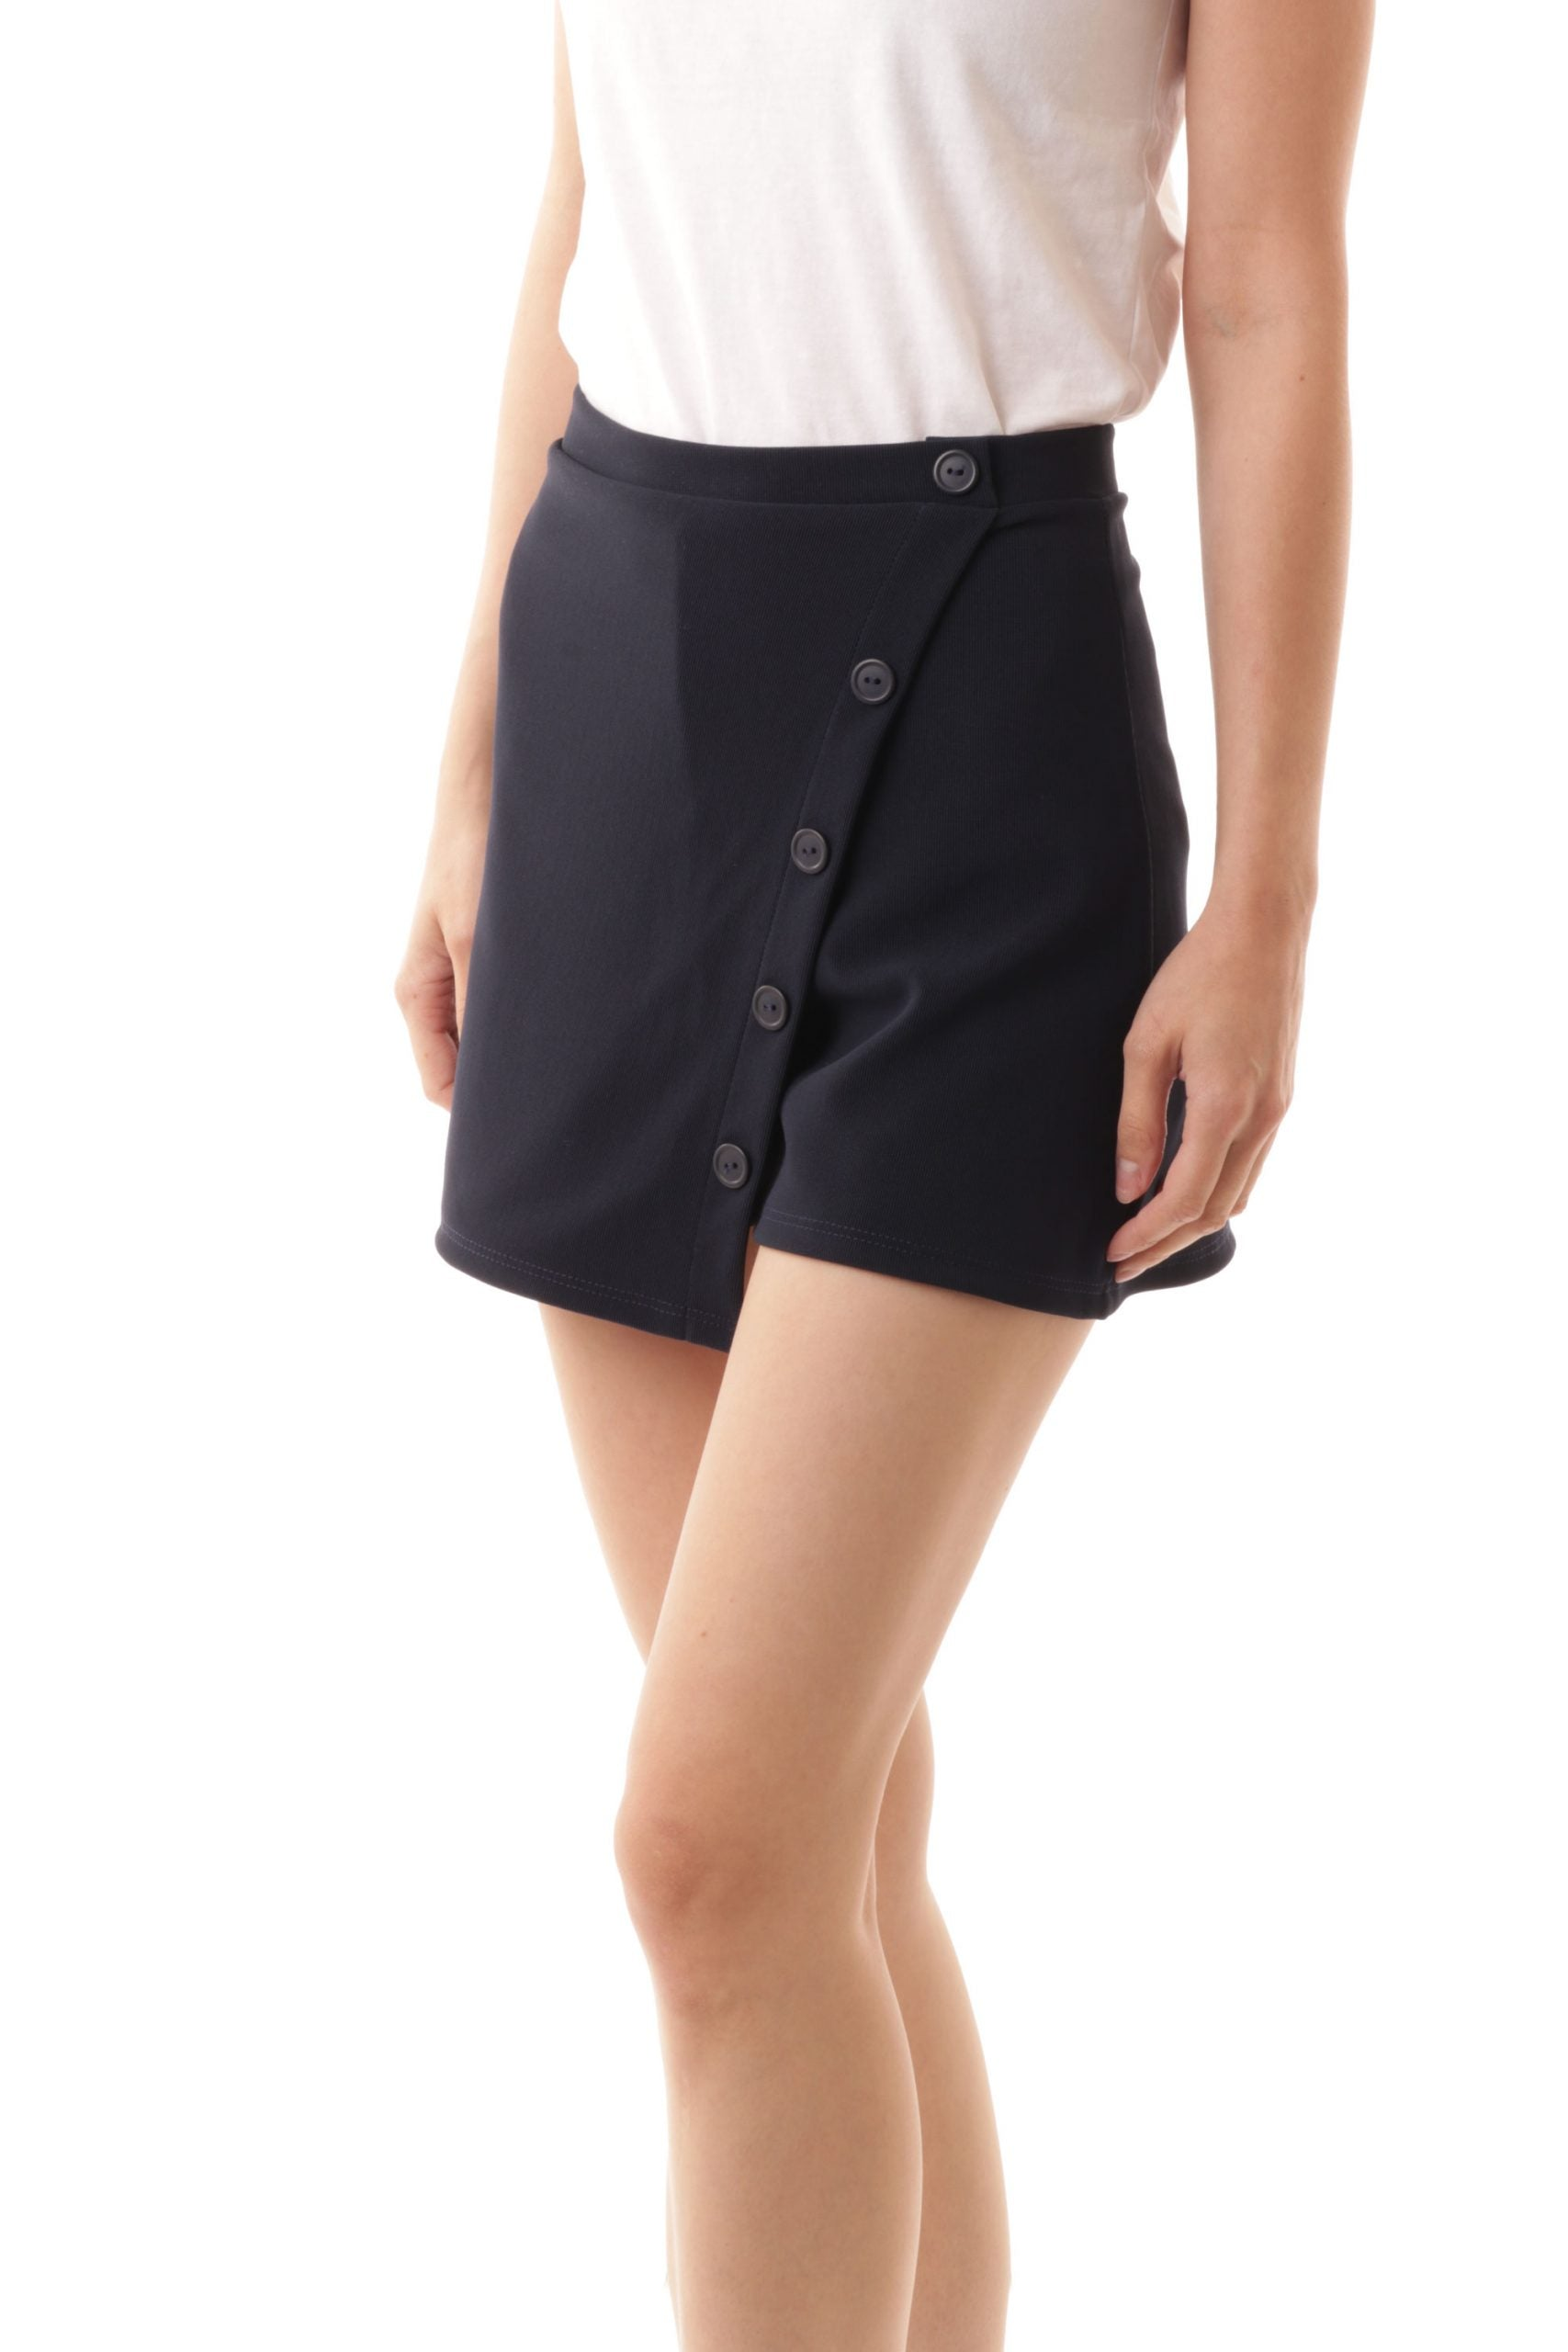 Button Skort $14/each